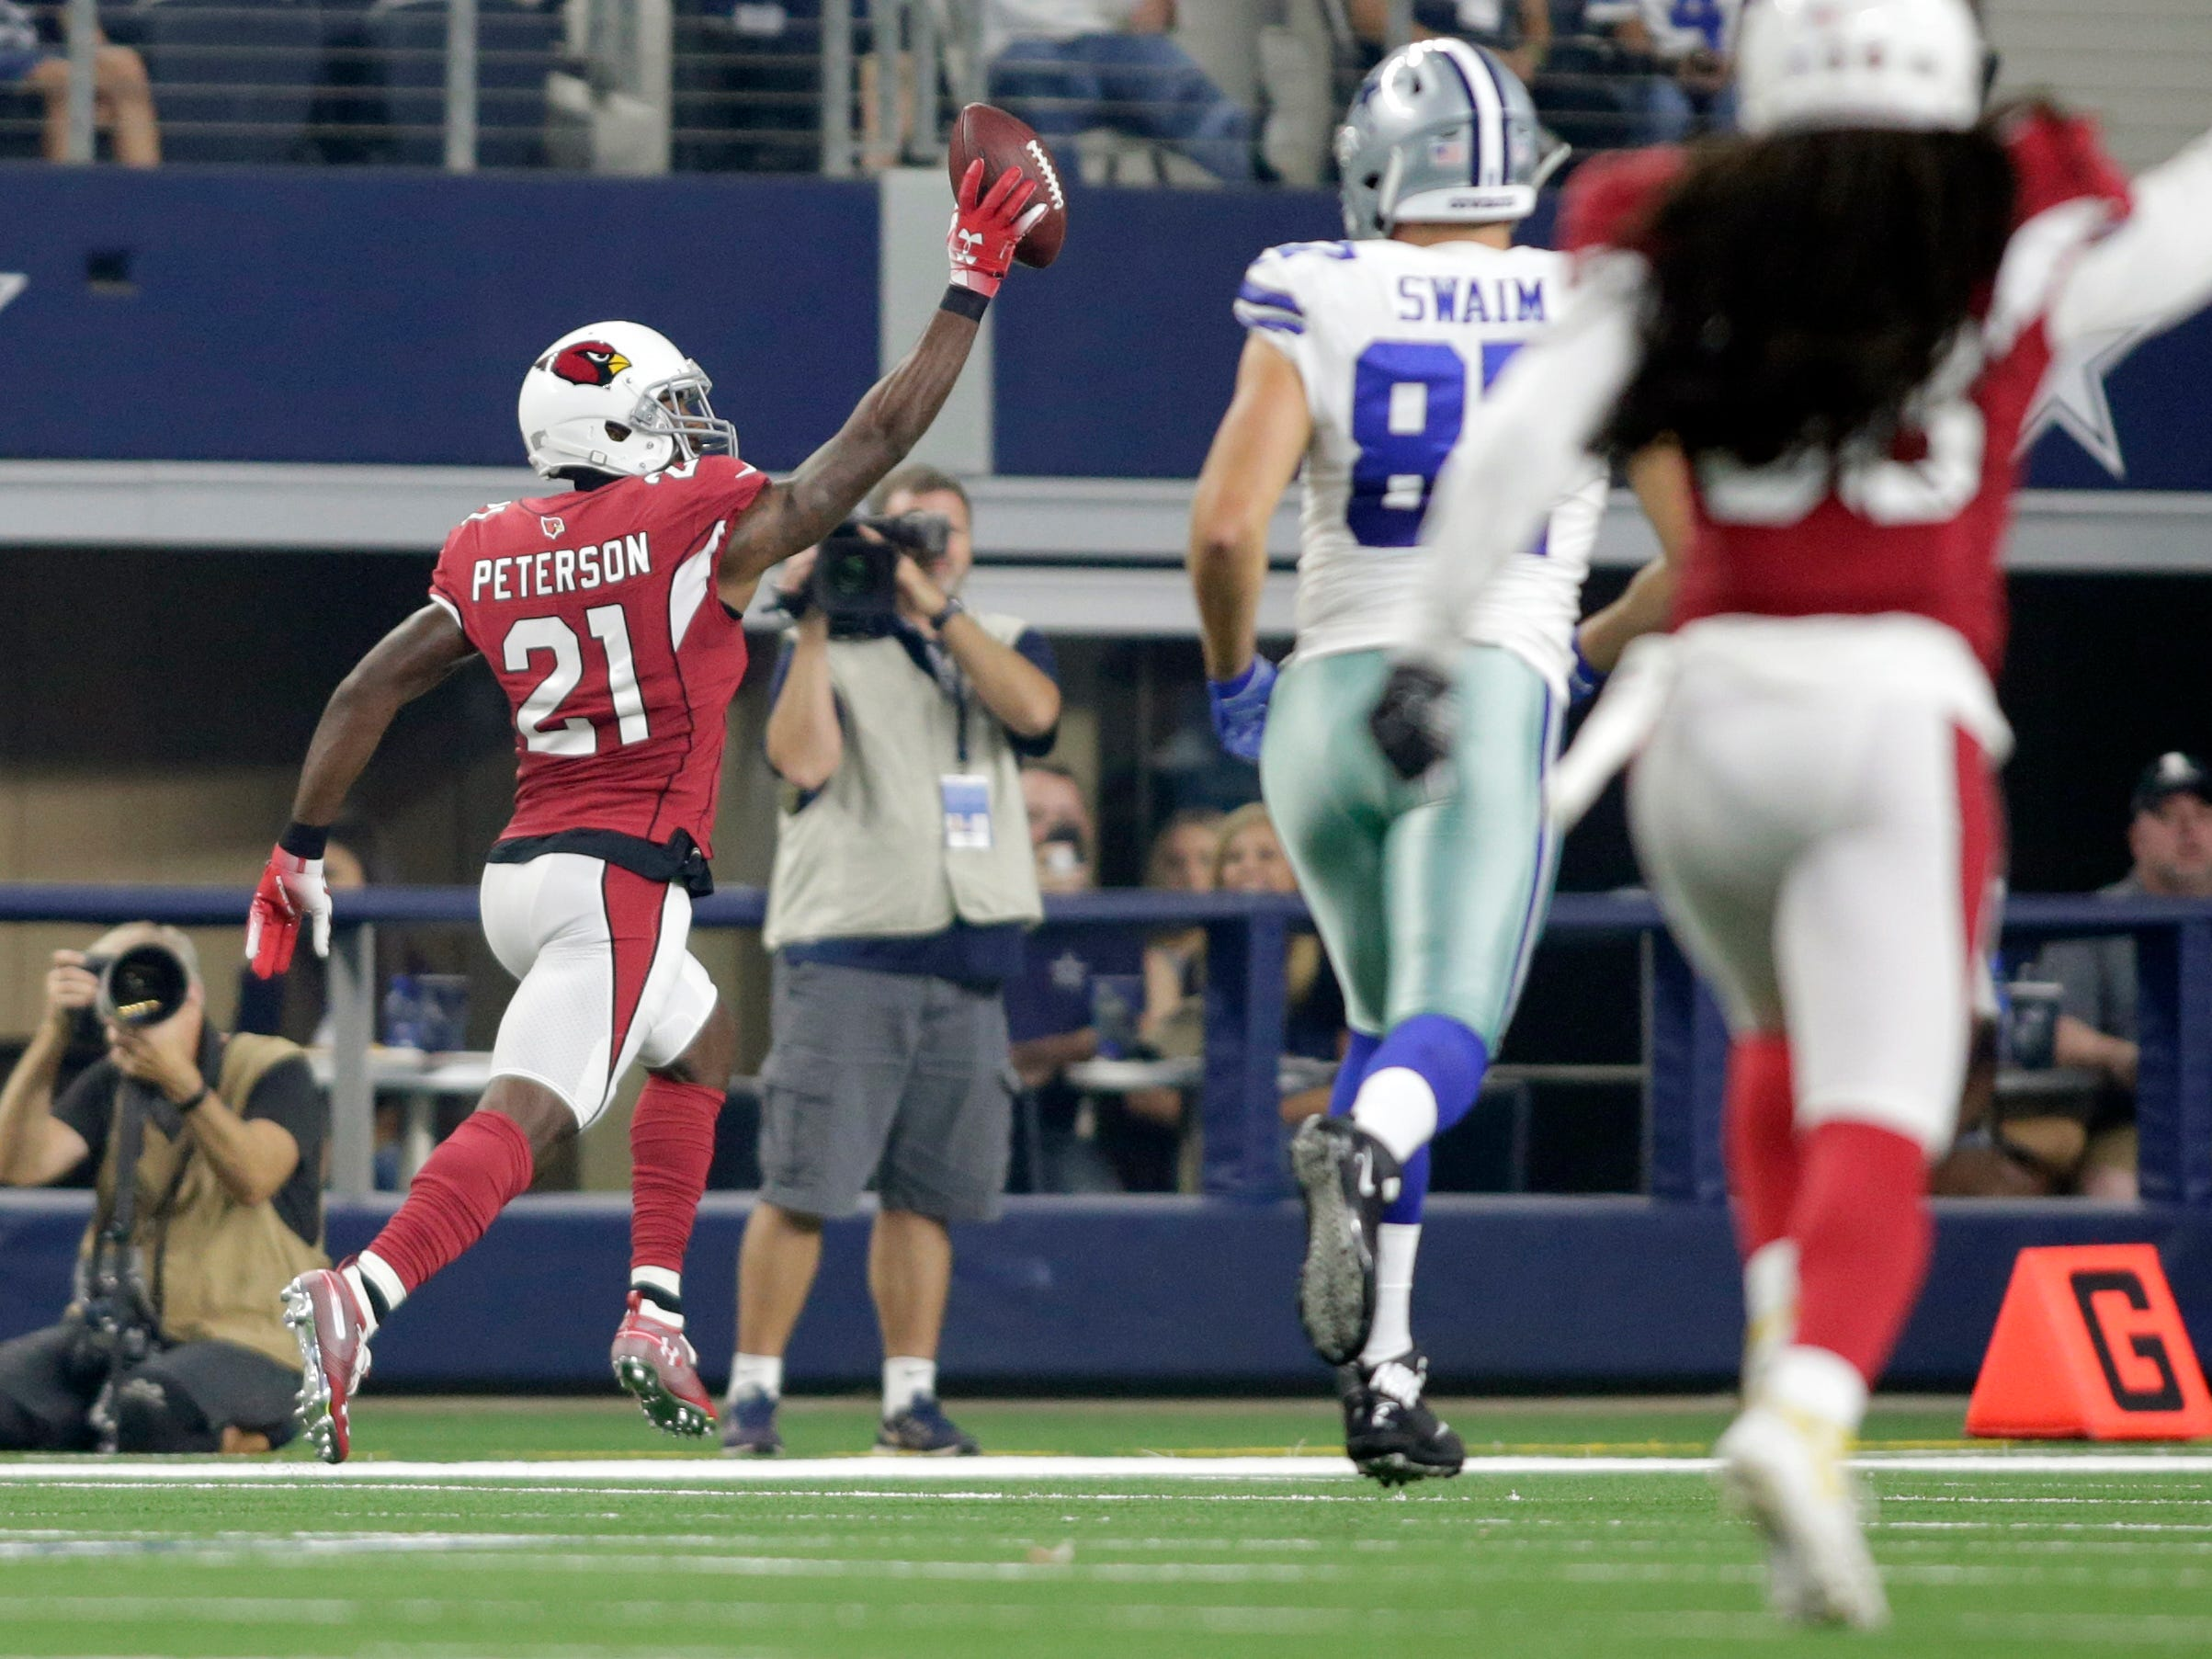 Aug 26, 2018; Arlington, TX, USA; Arizona Cardinals defensive back Patrick Peterson (21) returns a pass for a touchdown in the first quarter against the Dallas Cowboys at AT&T Stadium.